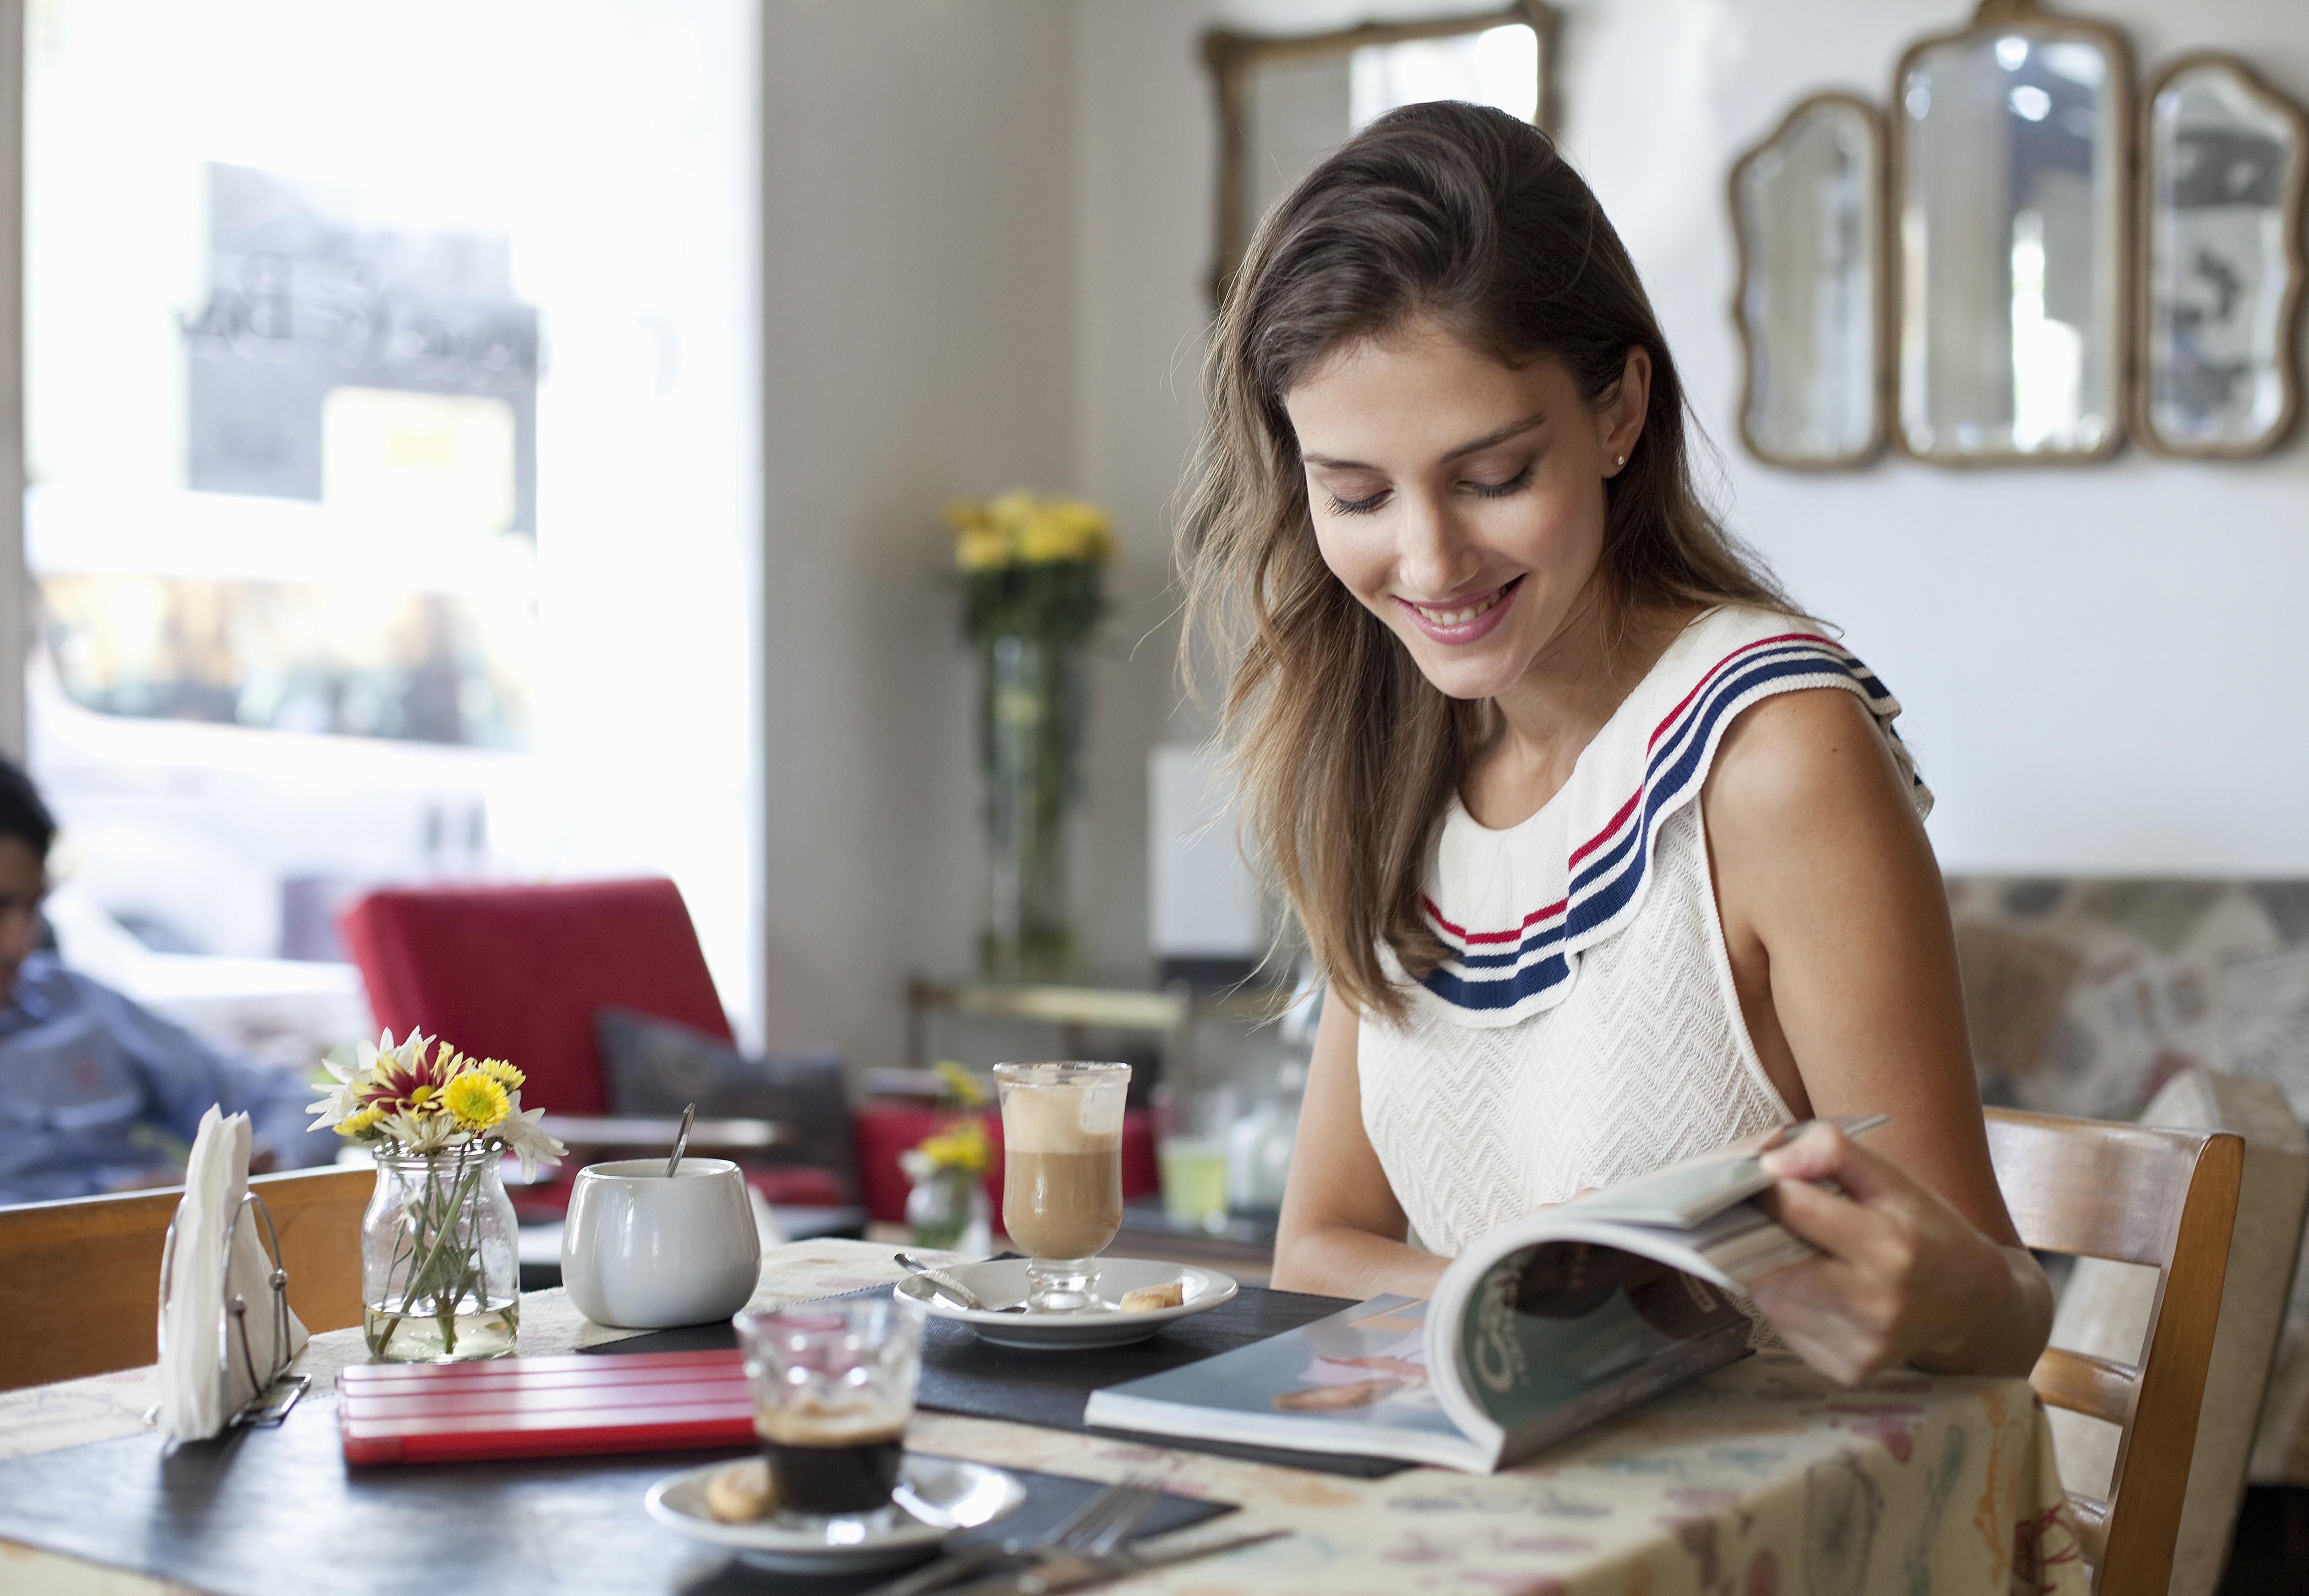 woman in café, having coffee, looking at magazine